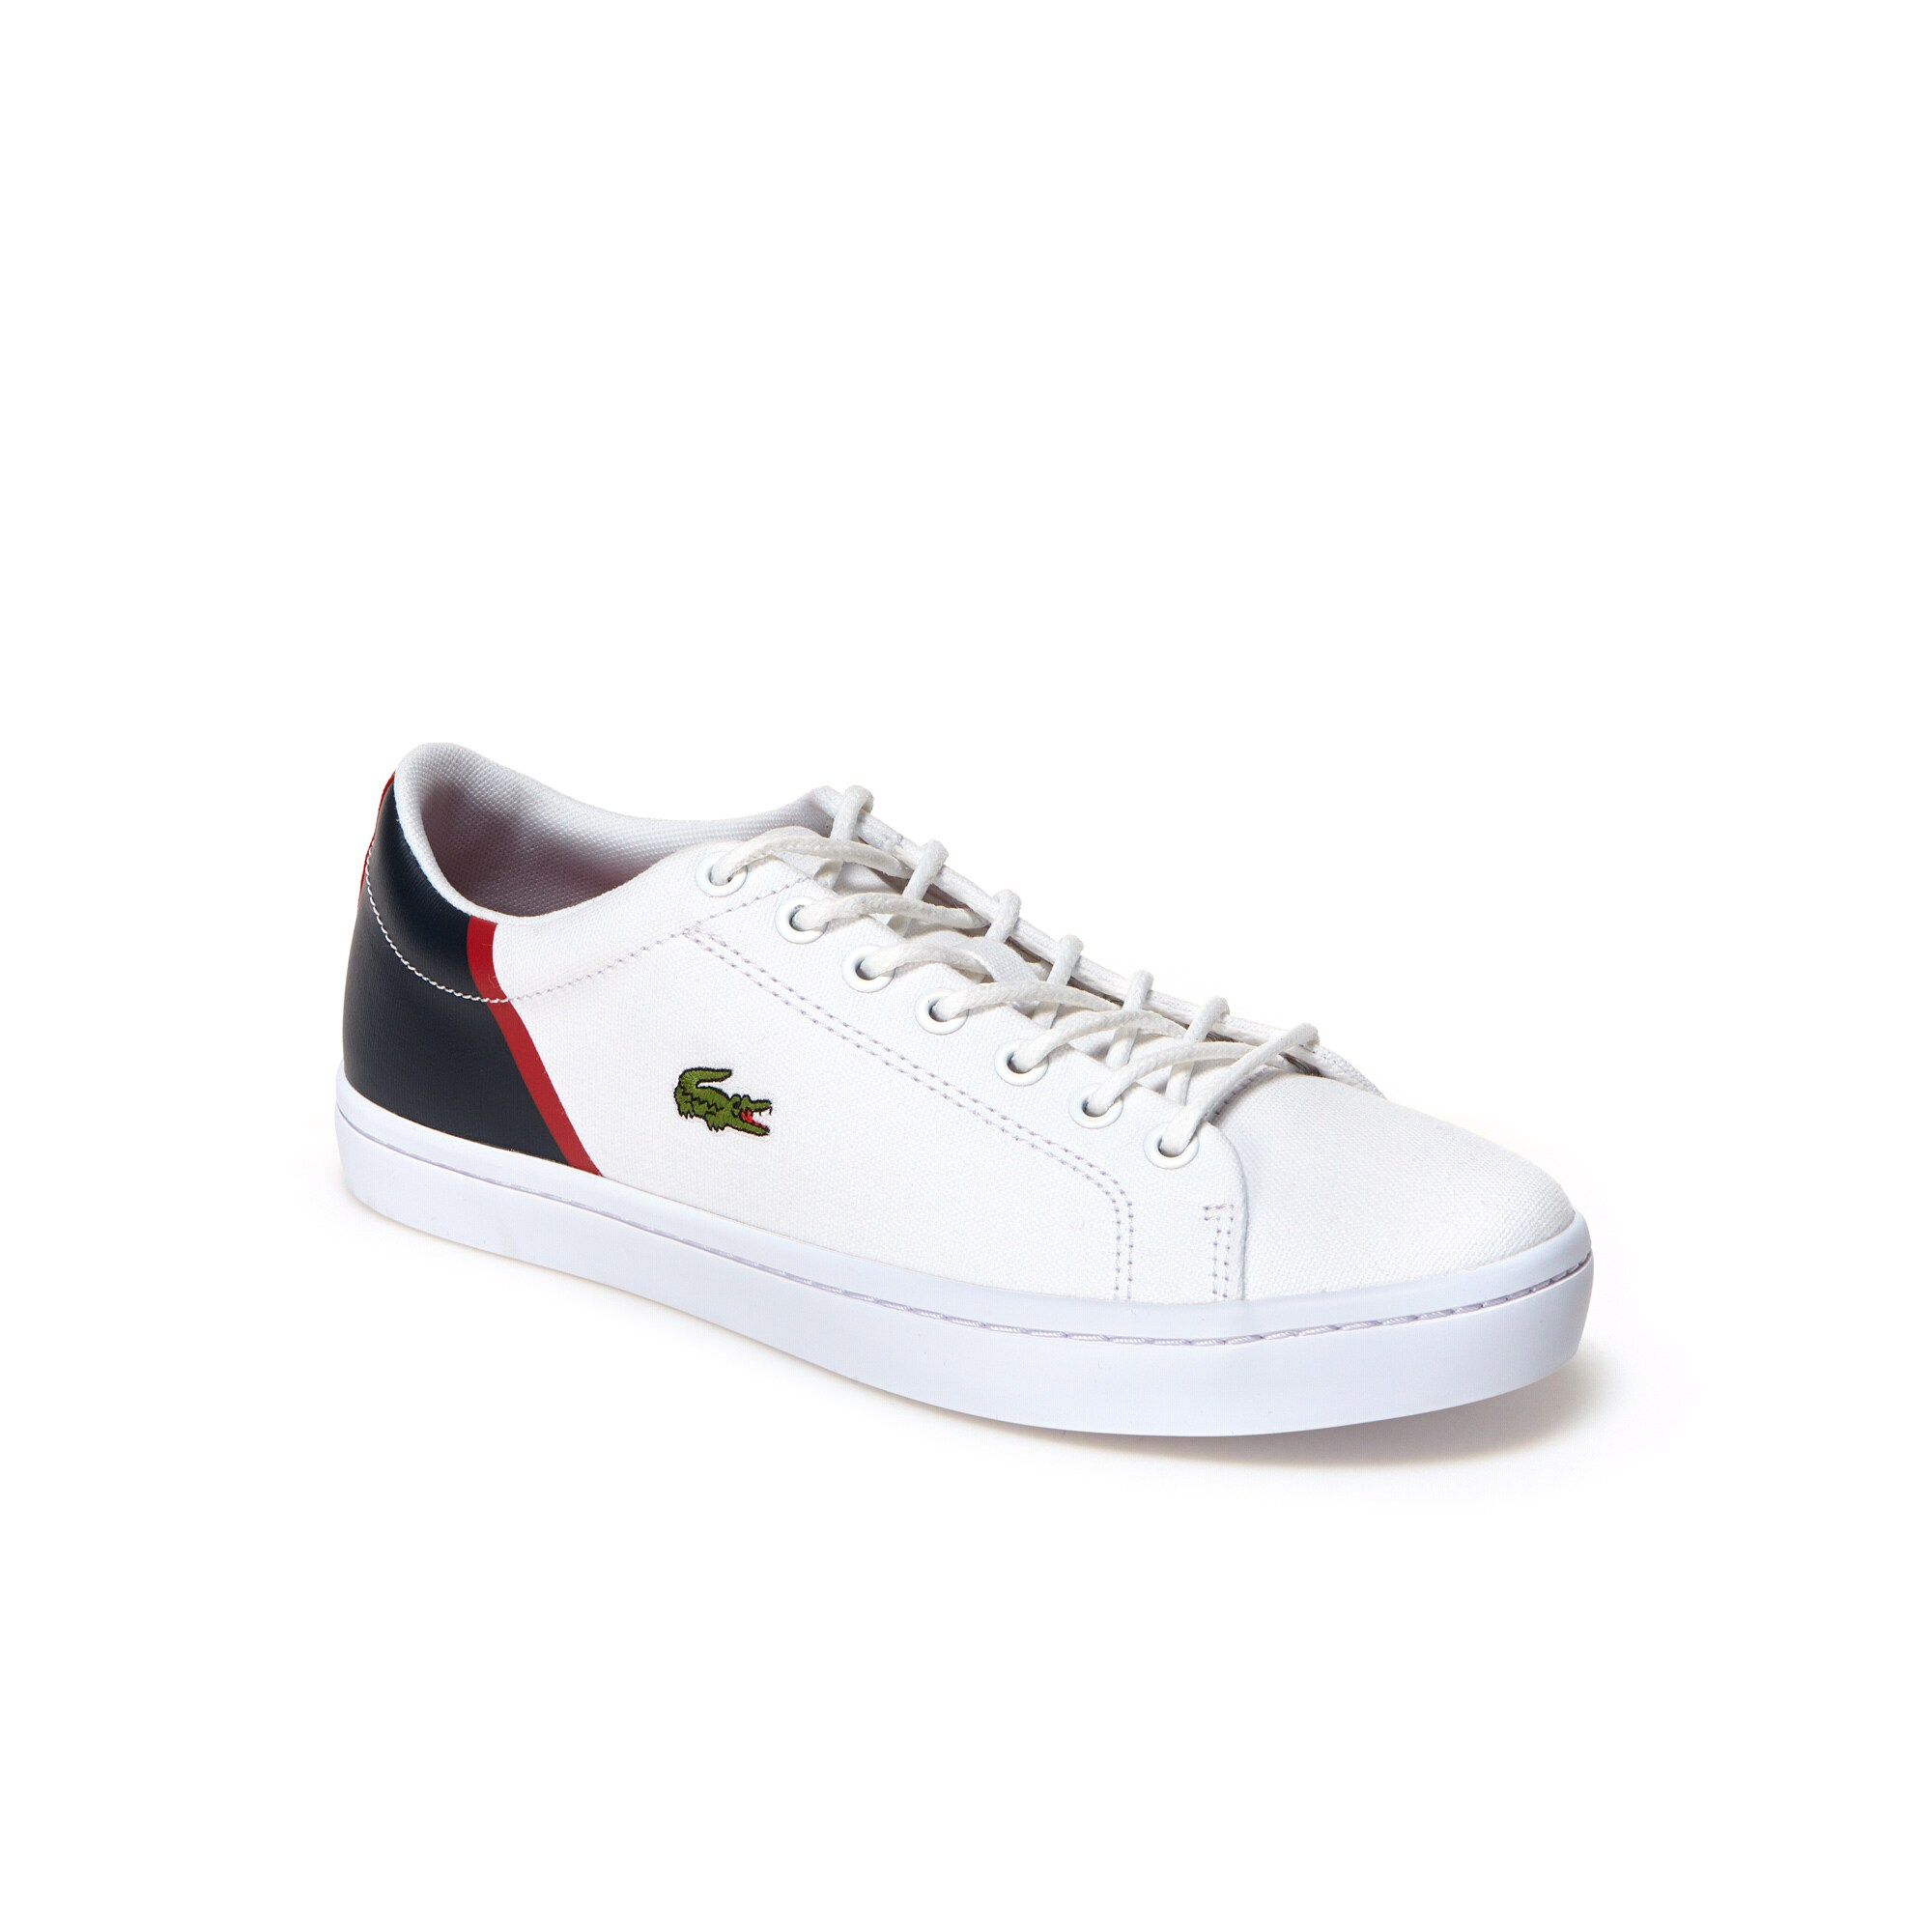 Sneakers Chaussures Homme Et Homme Lacoste Baskets 0rT0nzH